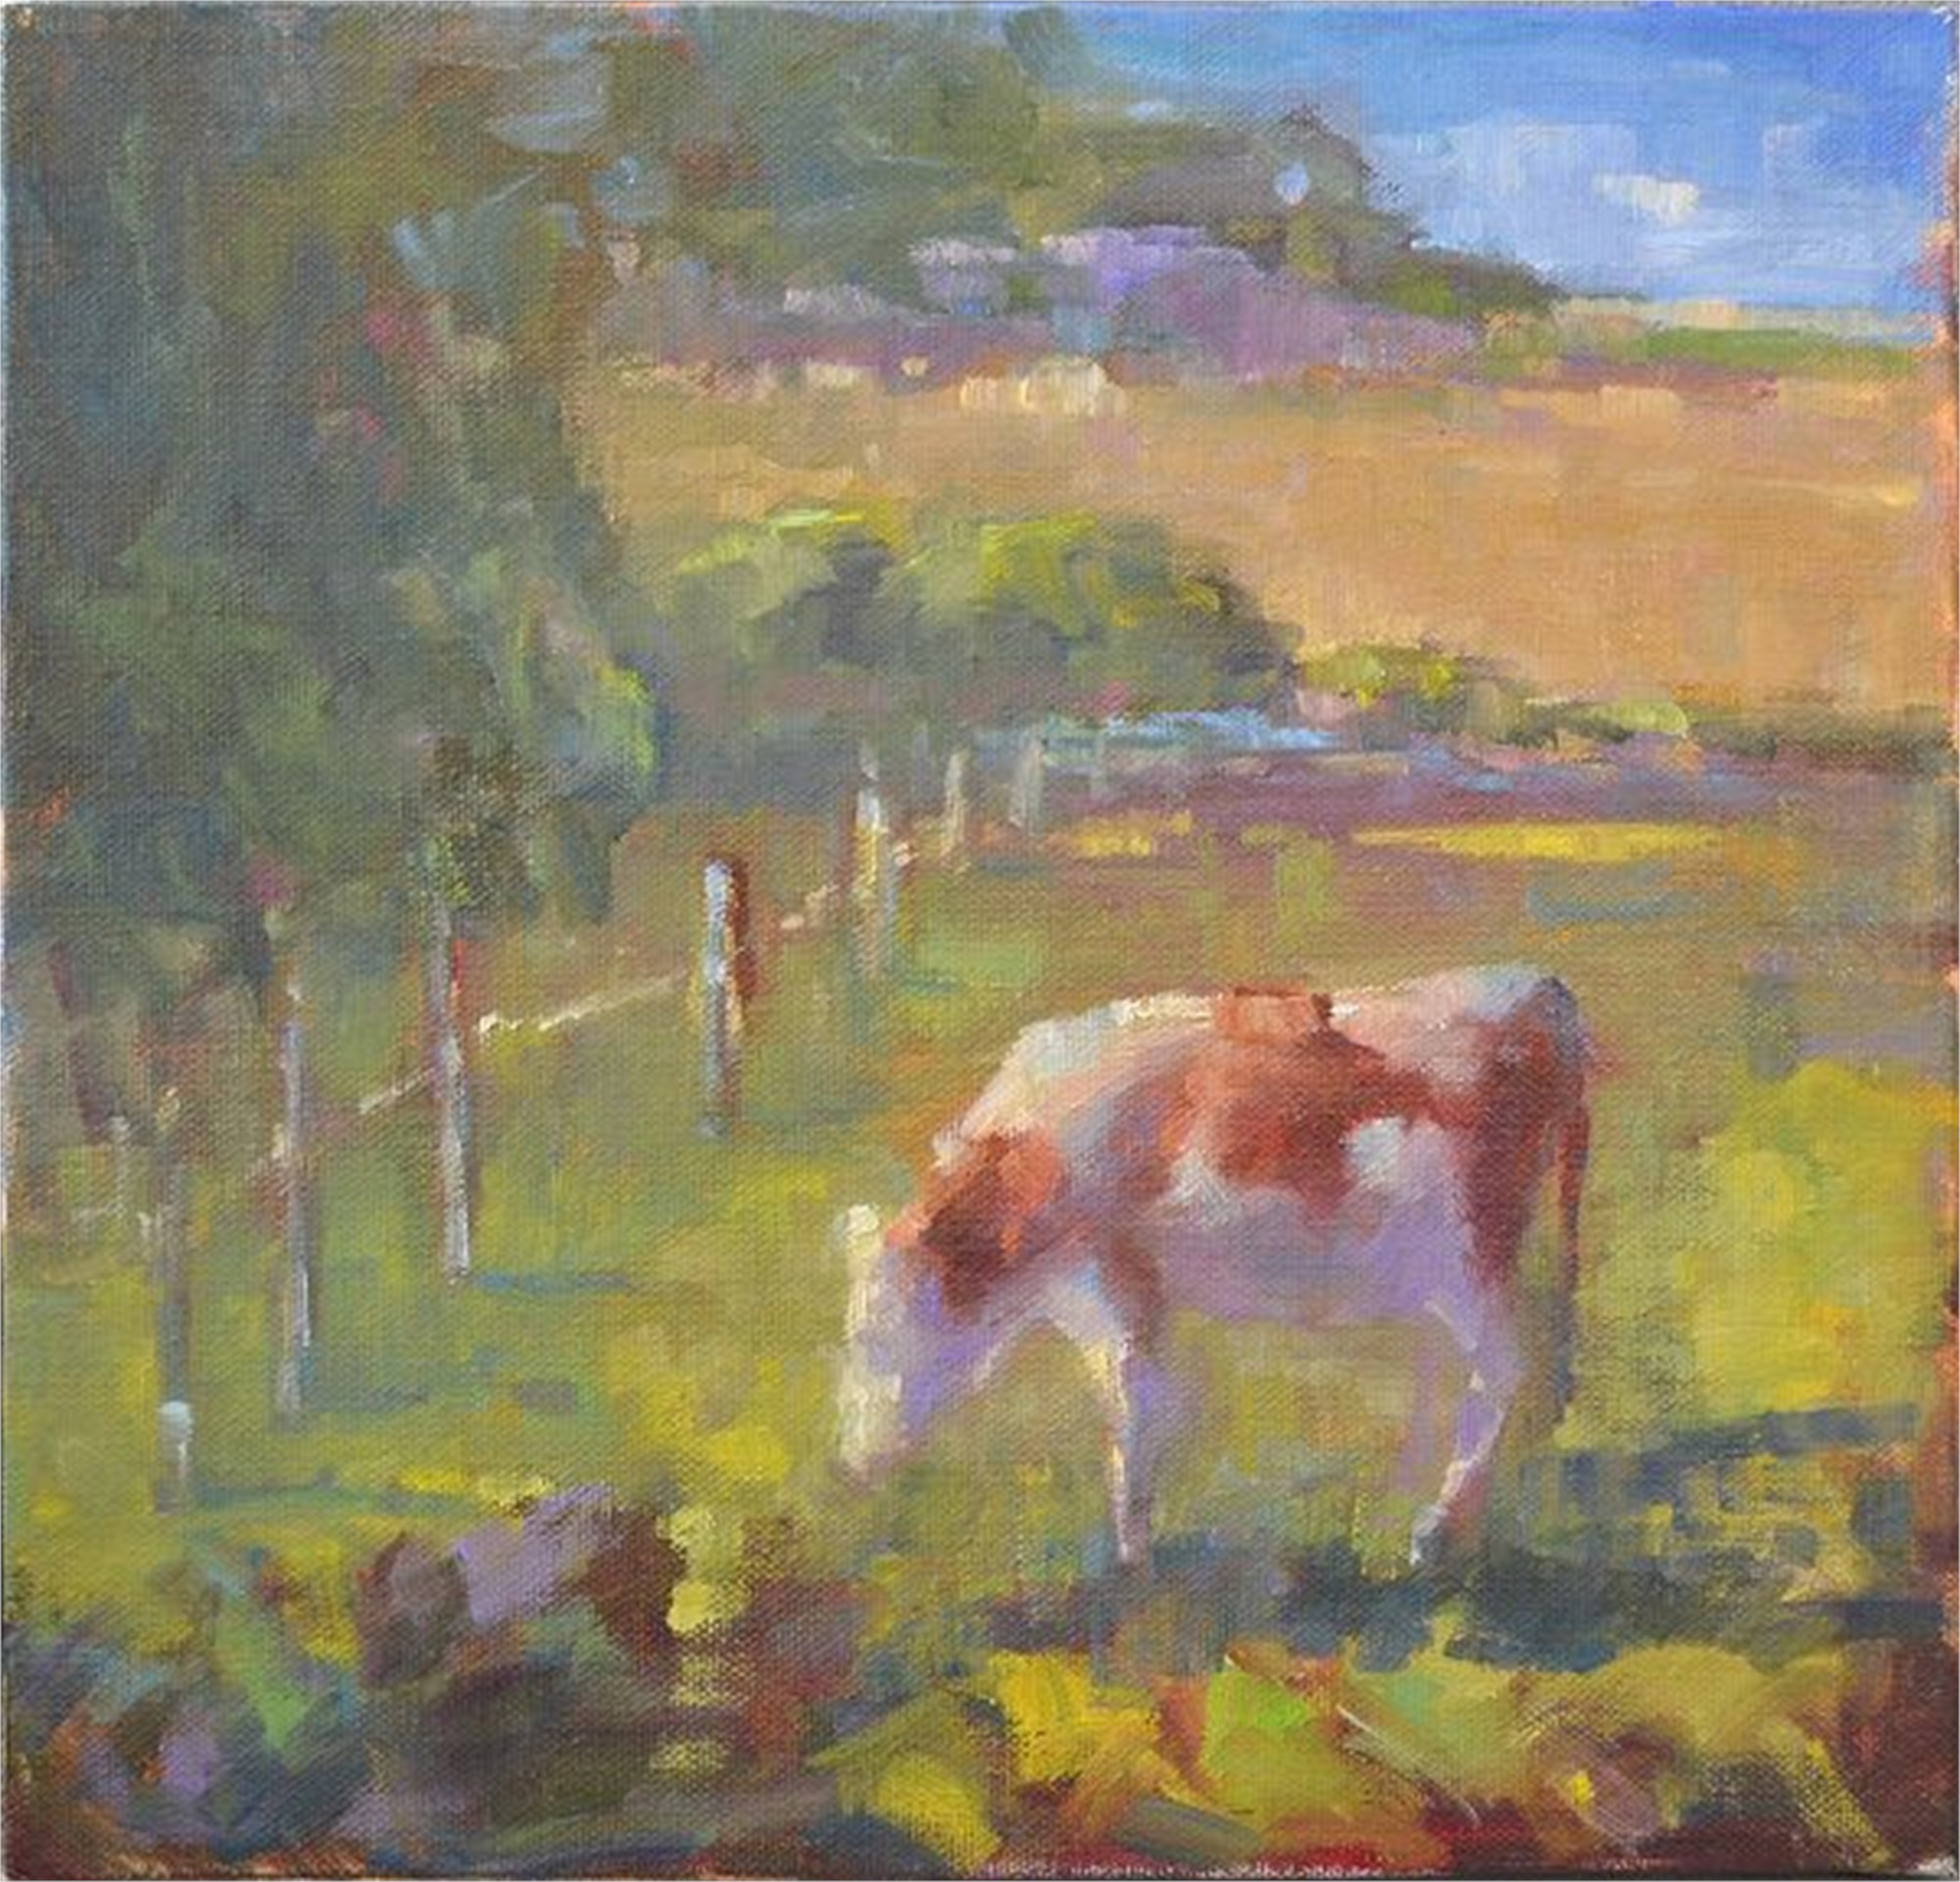 Grazing in the Sunlight by Karen Hewitt Hagan